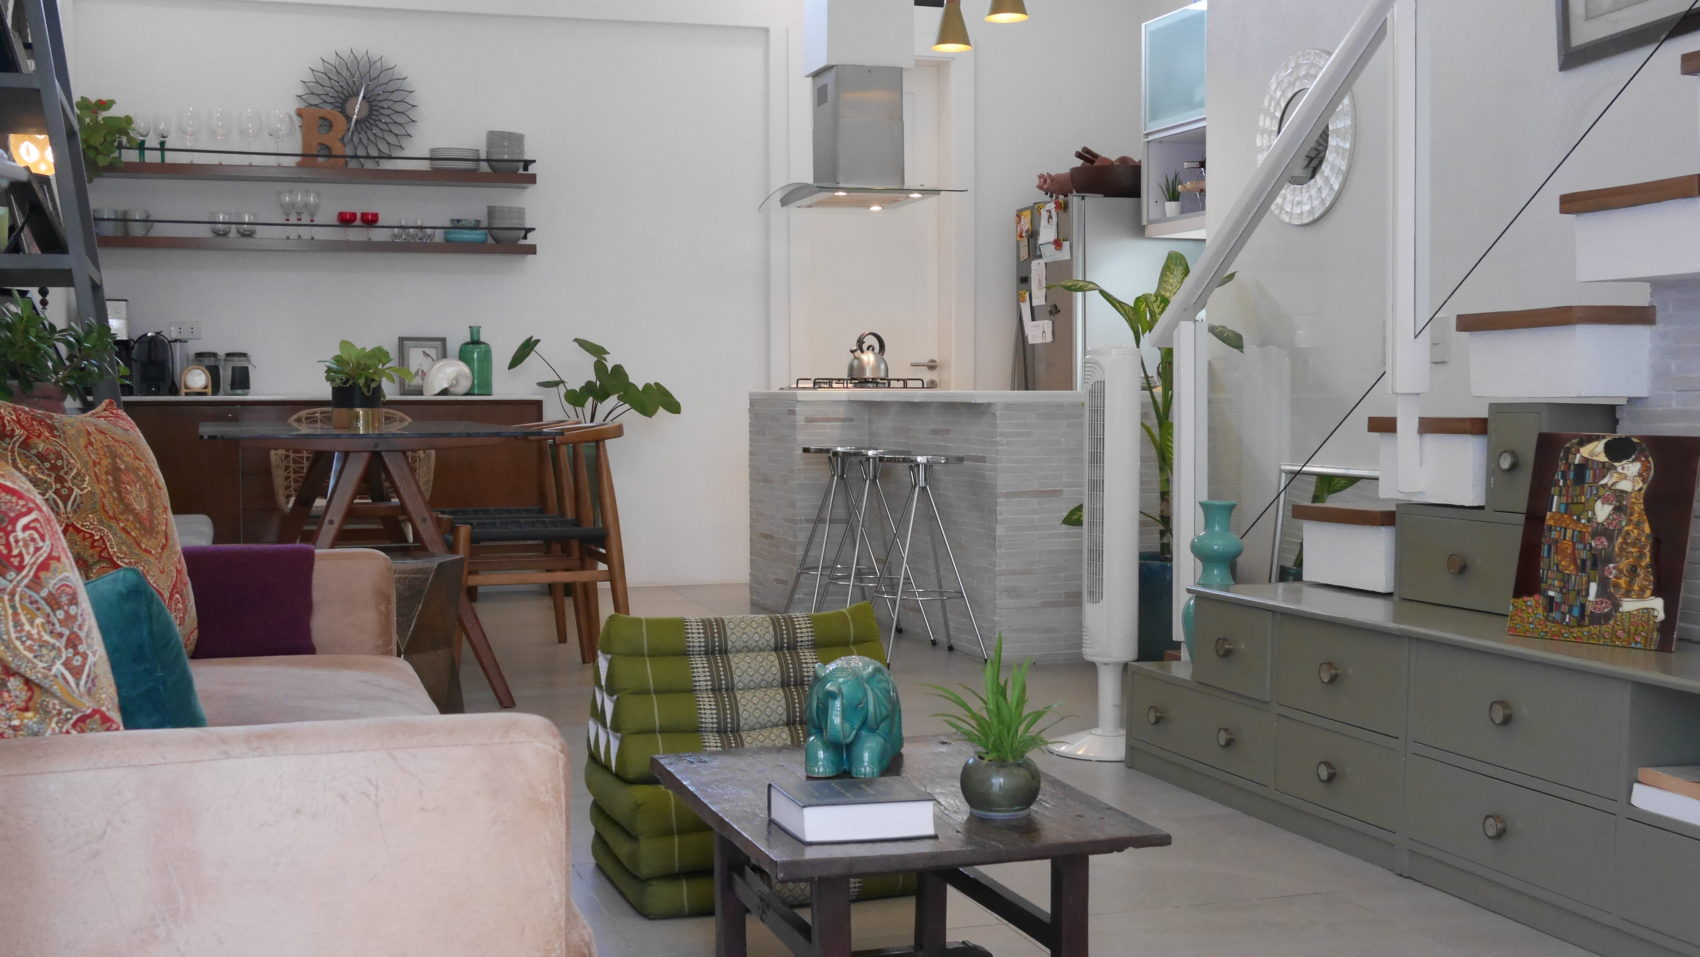 A tour of my newly decorated minimalist home bianca king for Minimalist house instagram